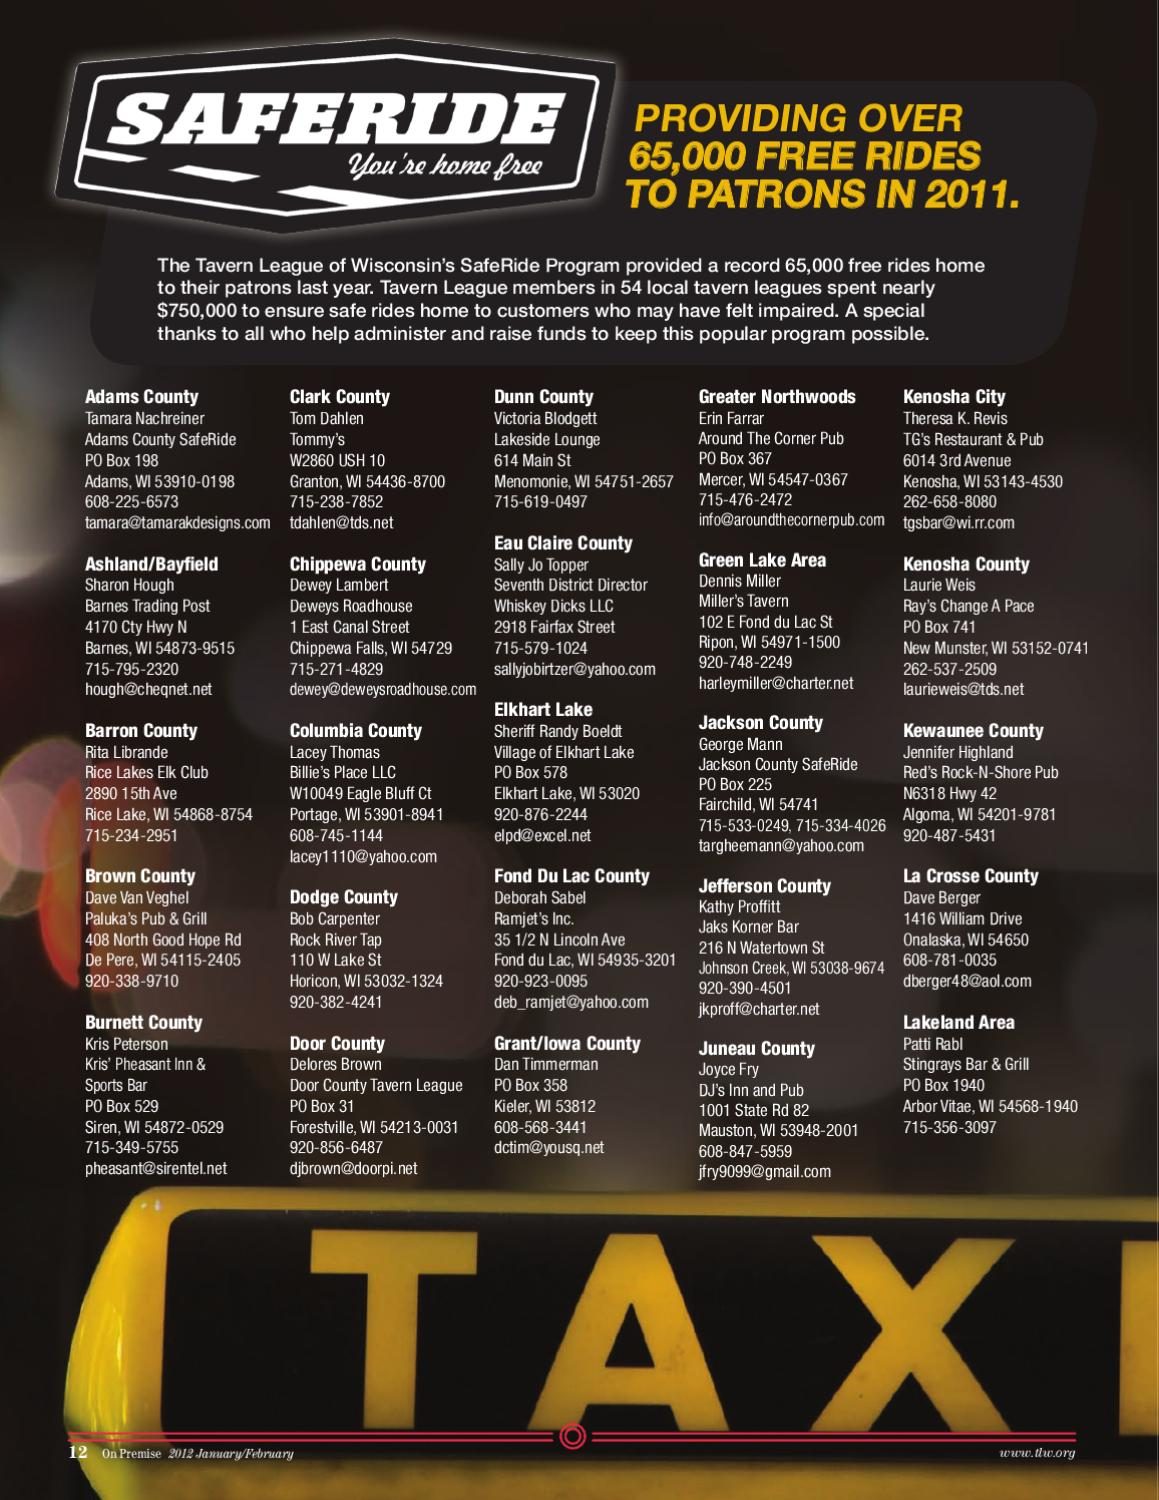 2012 Tavern League of Wisconsin Membership Directory & Buyer's Guide